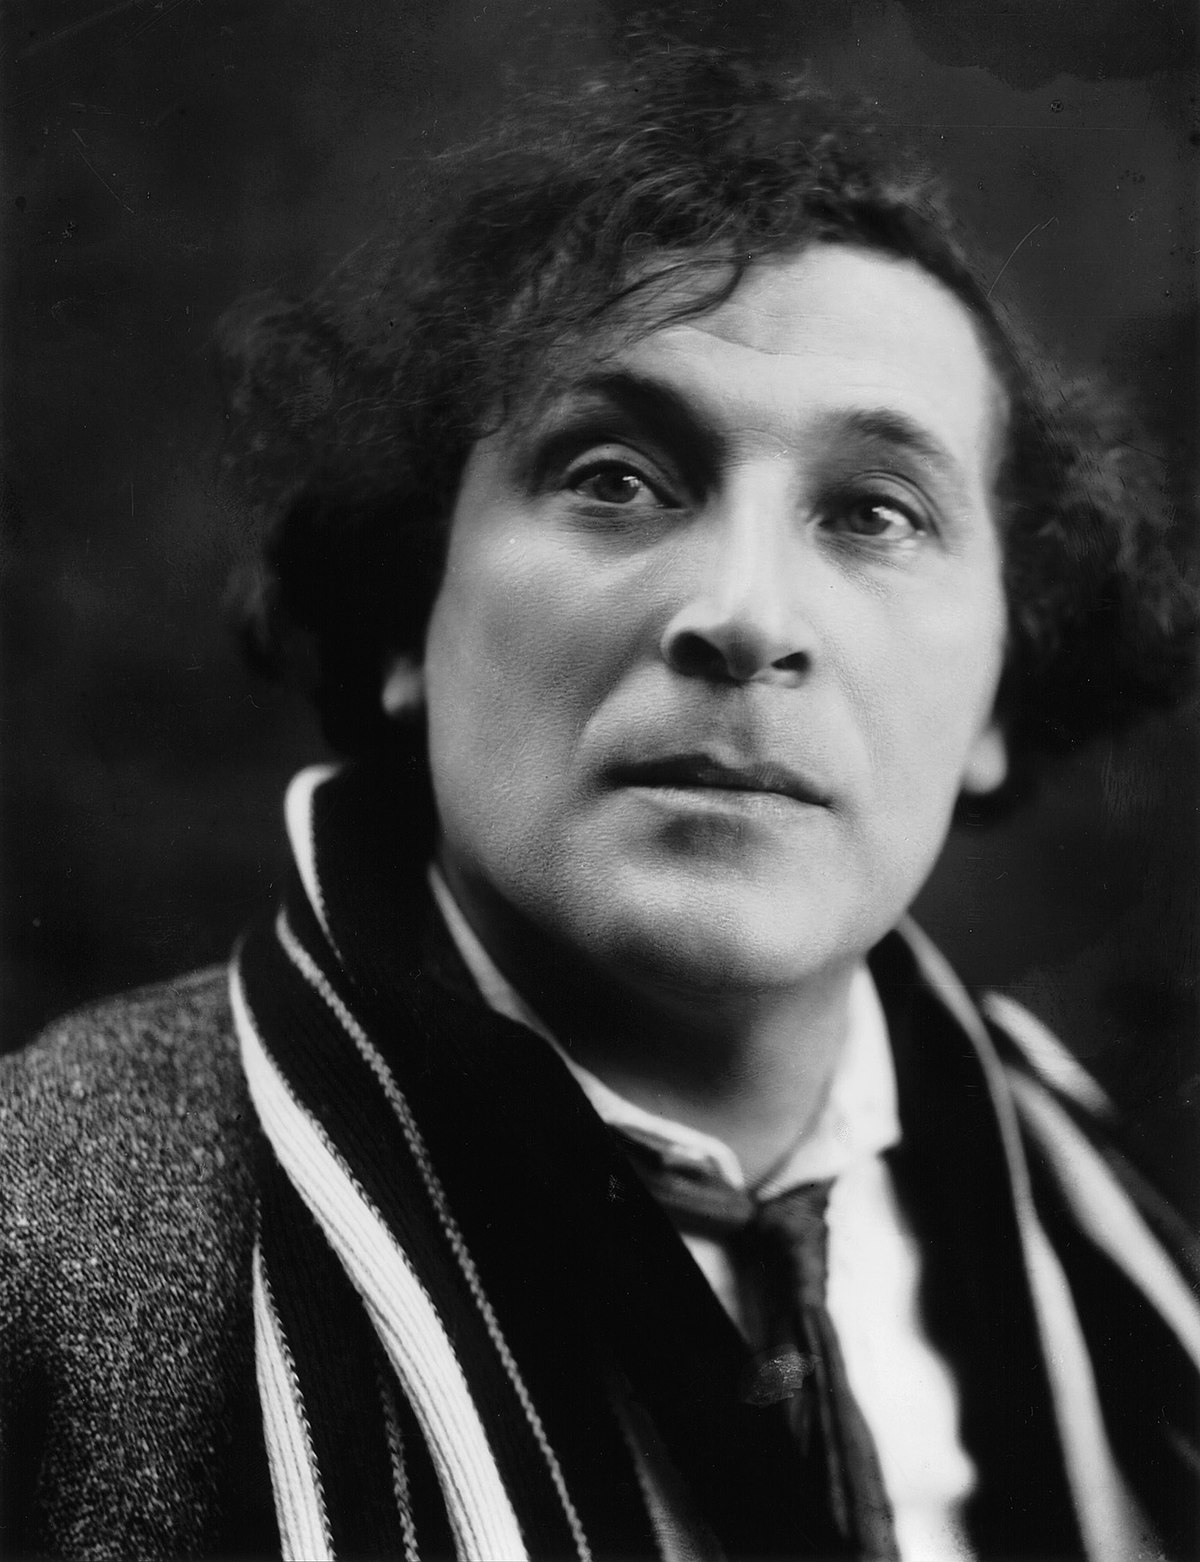 marc chagall und die bibel : marc chagall un new york :  24 avenue marc chagall 37100 tours en 2020/2021